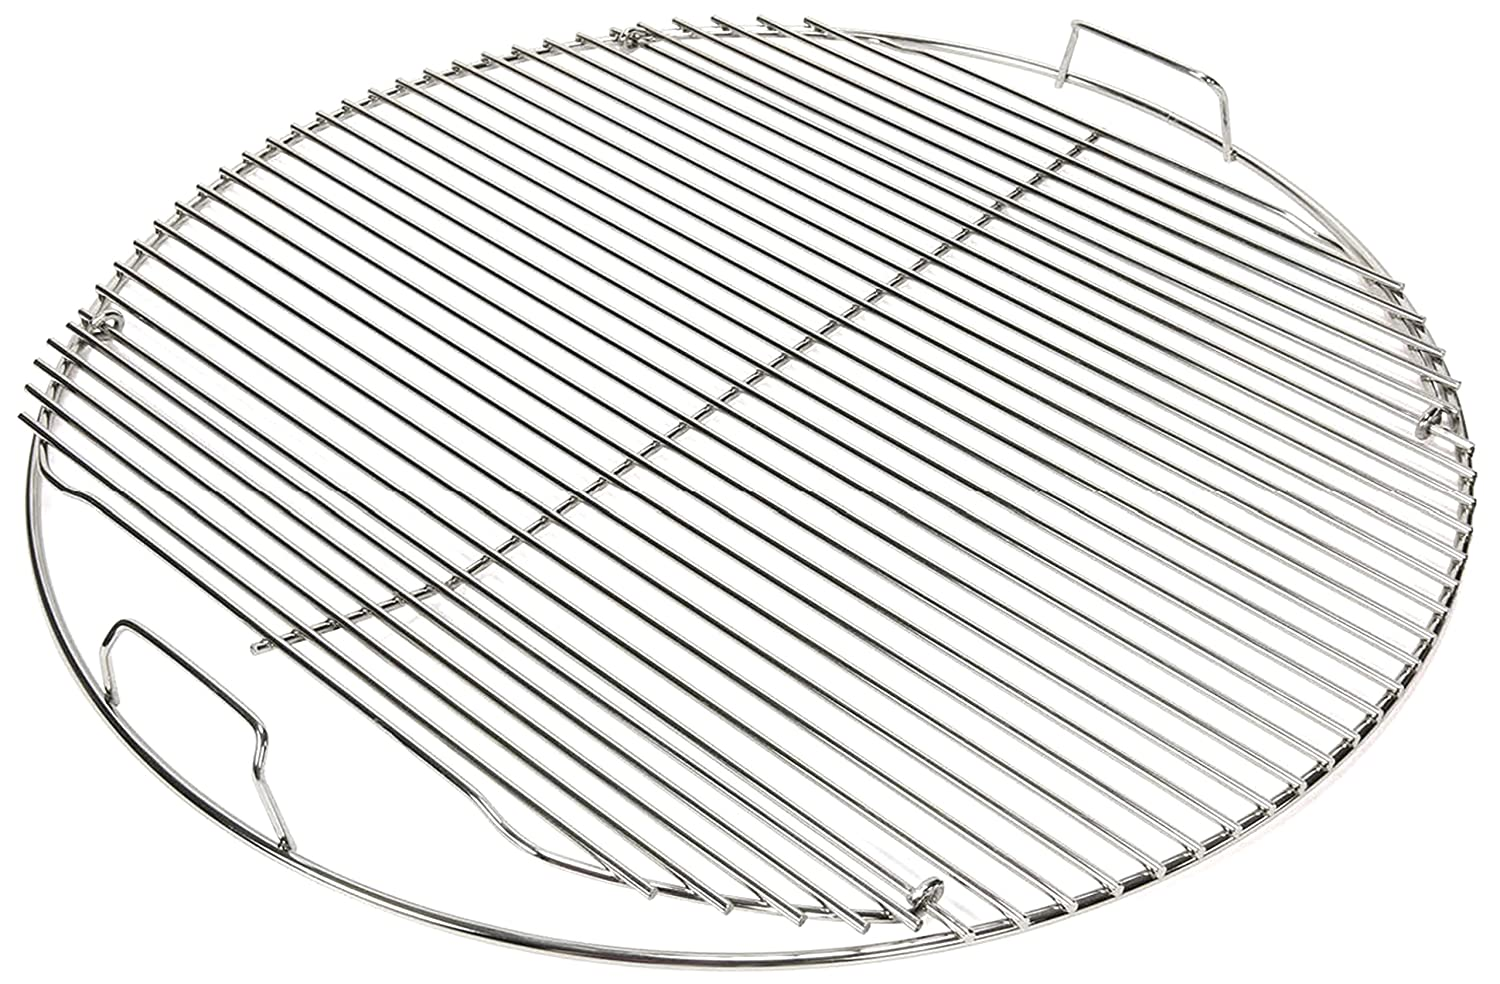 Grill Care Stainless Steel Grate Compatible With